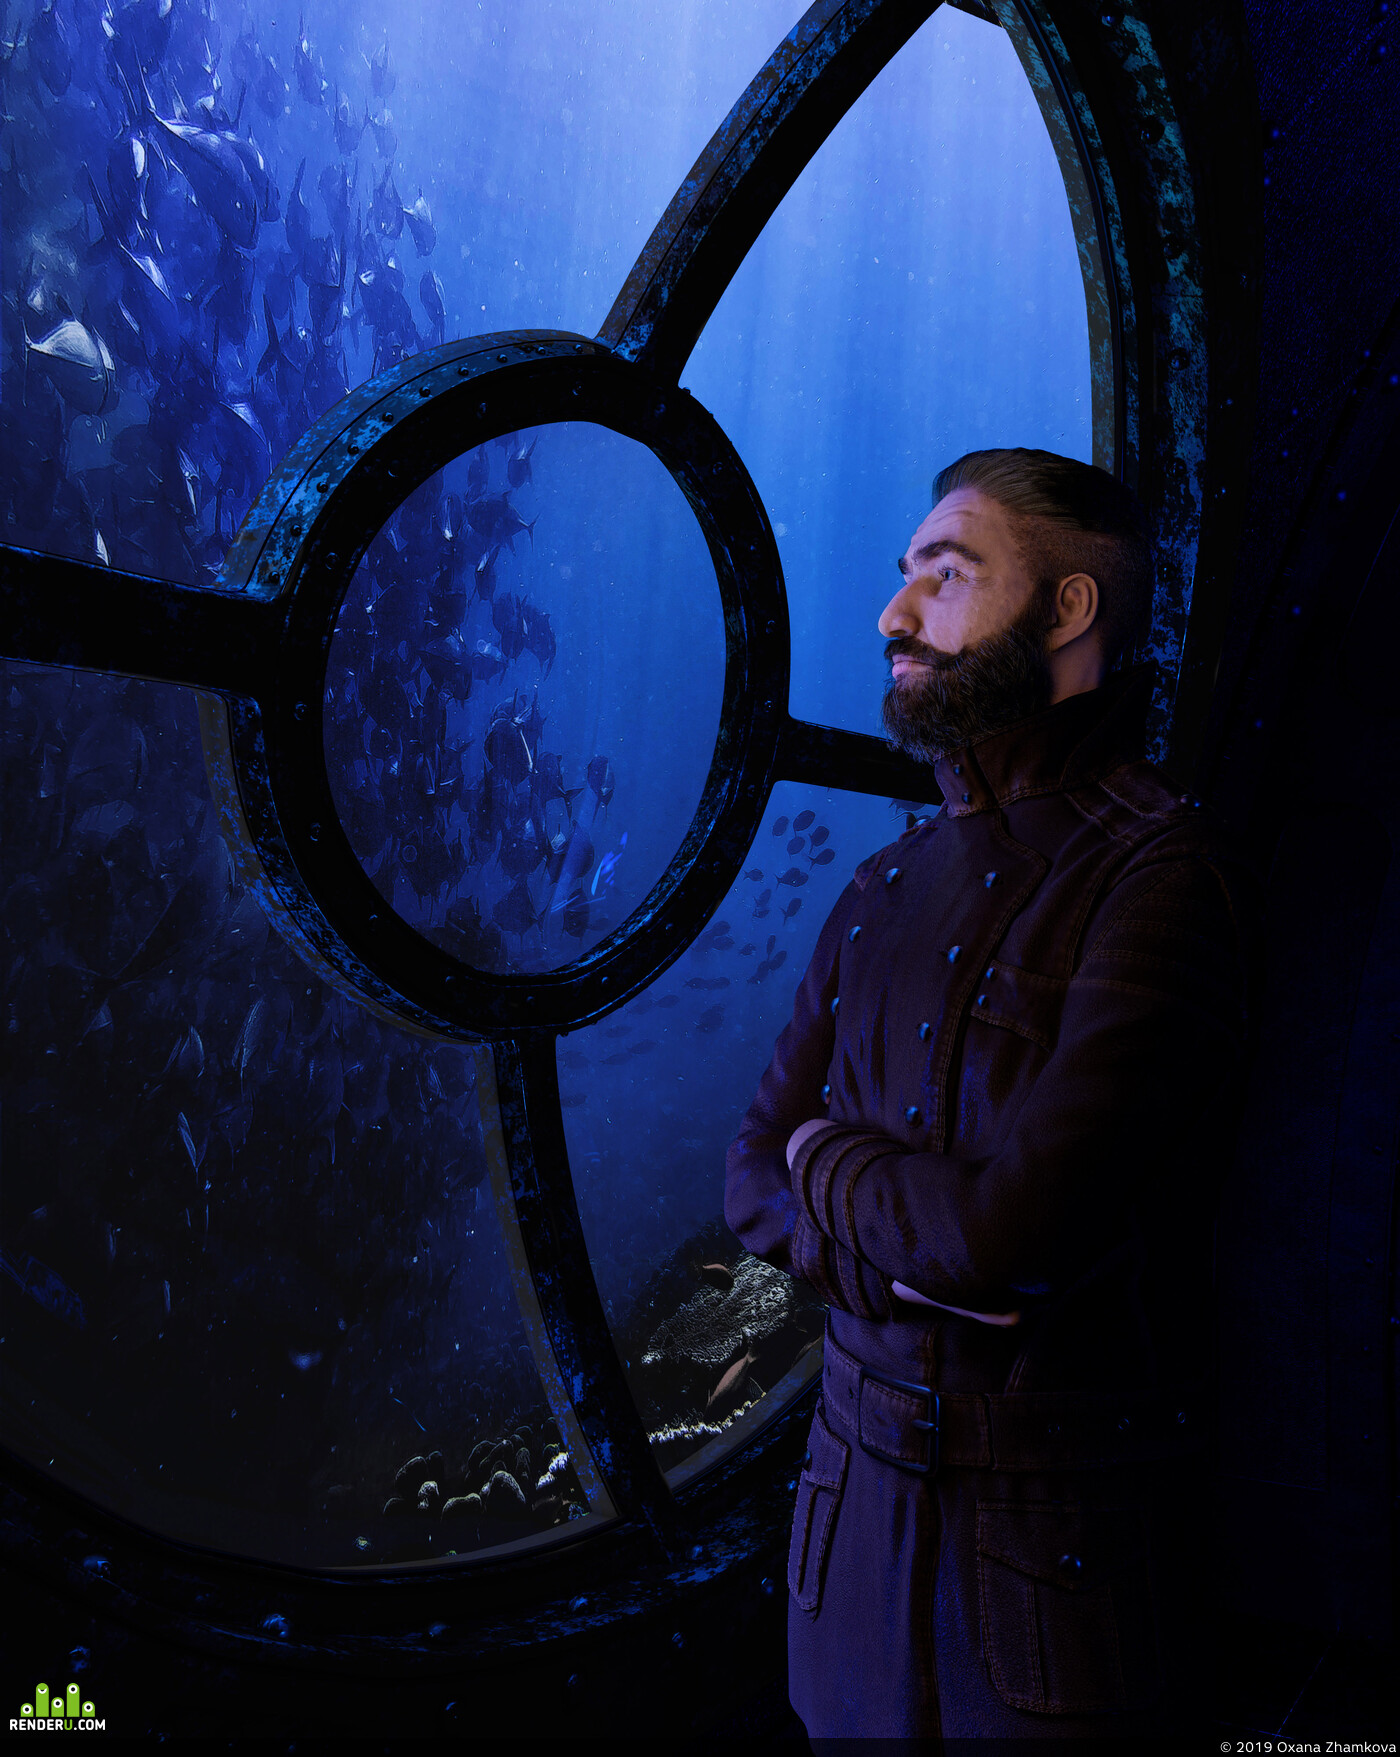 Captain Nemo, nautilus submarine, steampunk